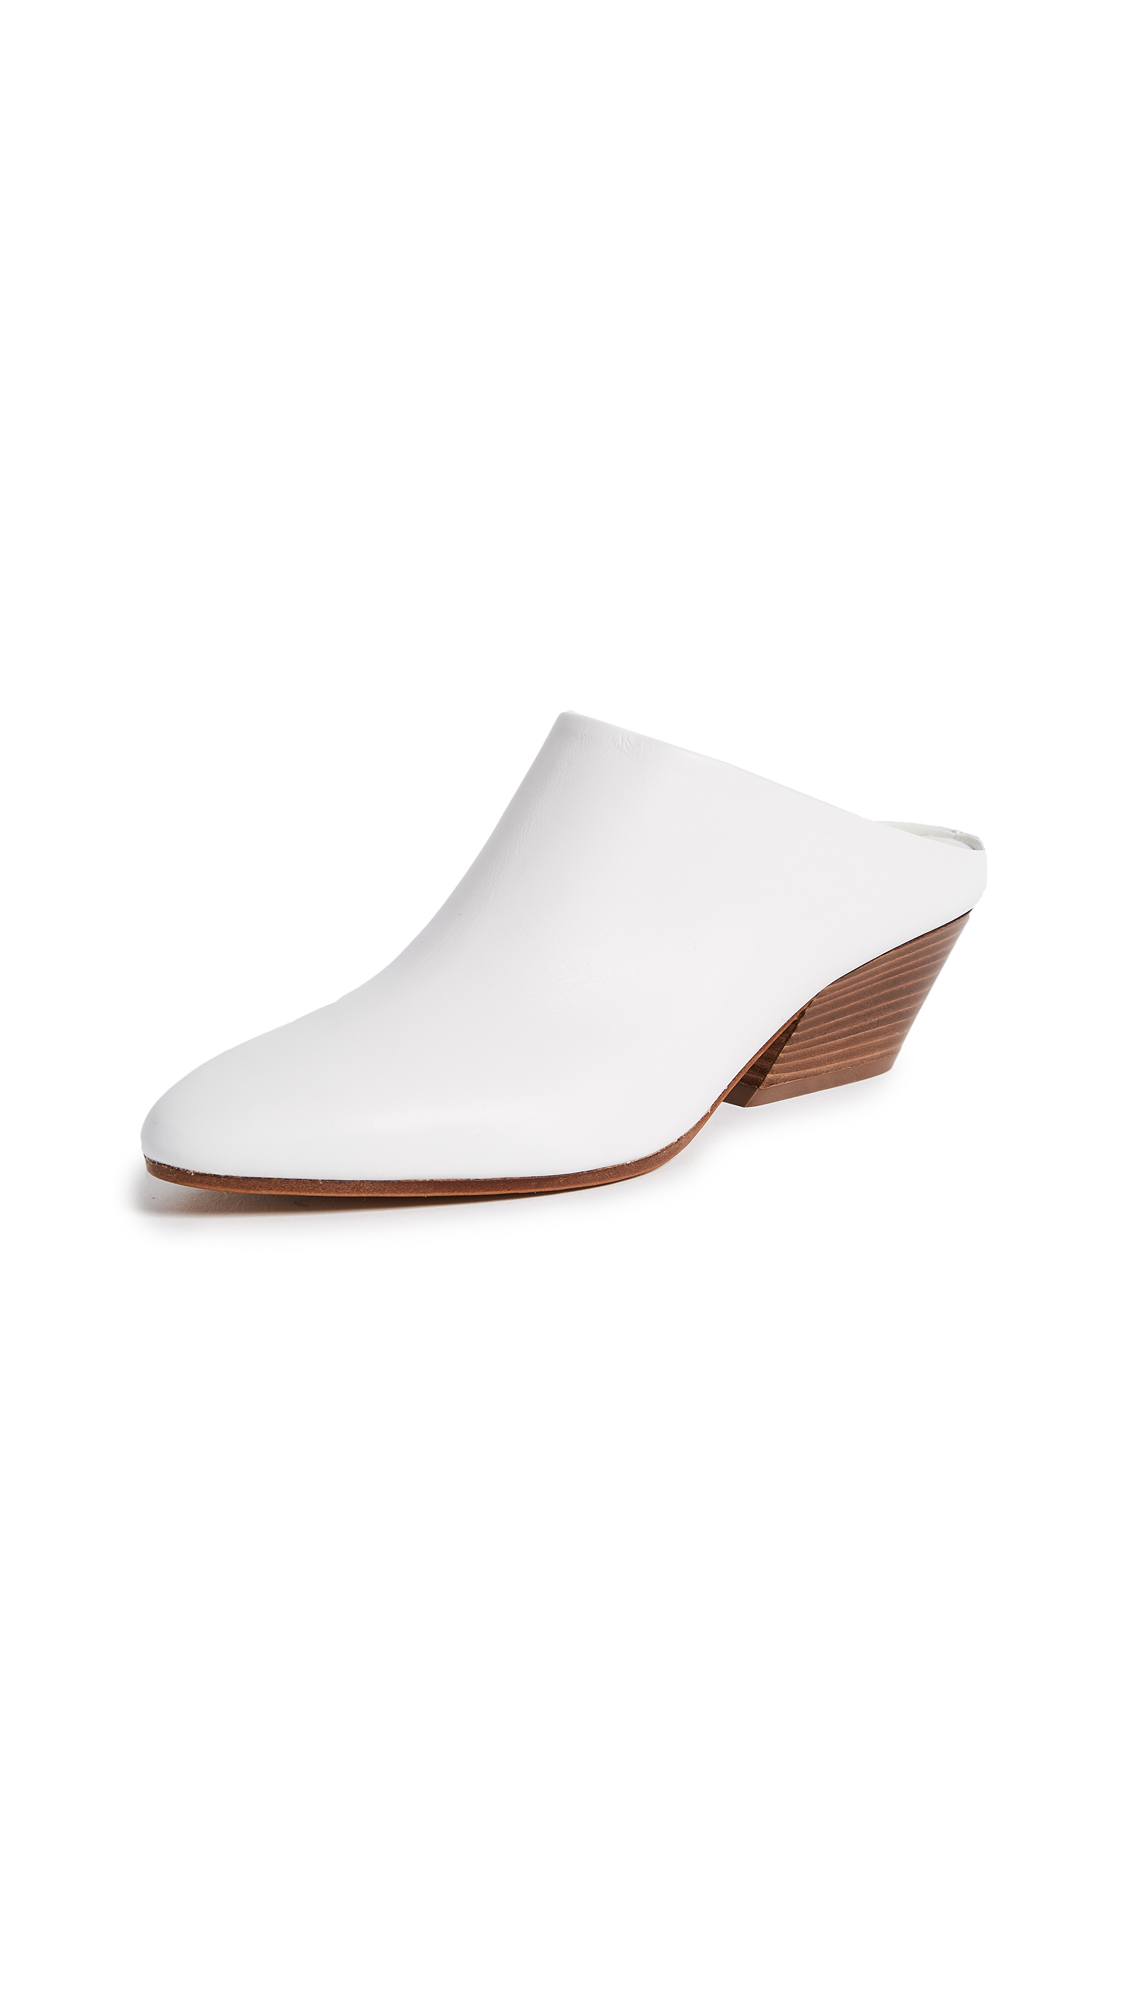 Vince Vigo Mules - Optic White